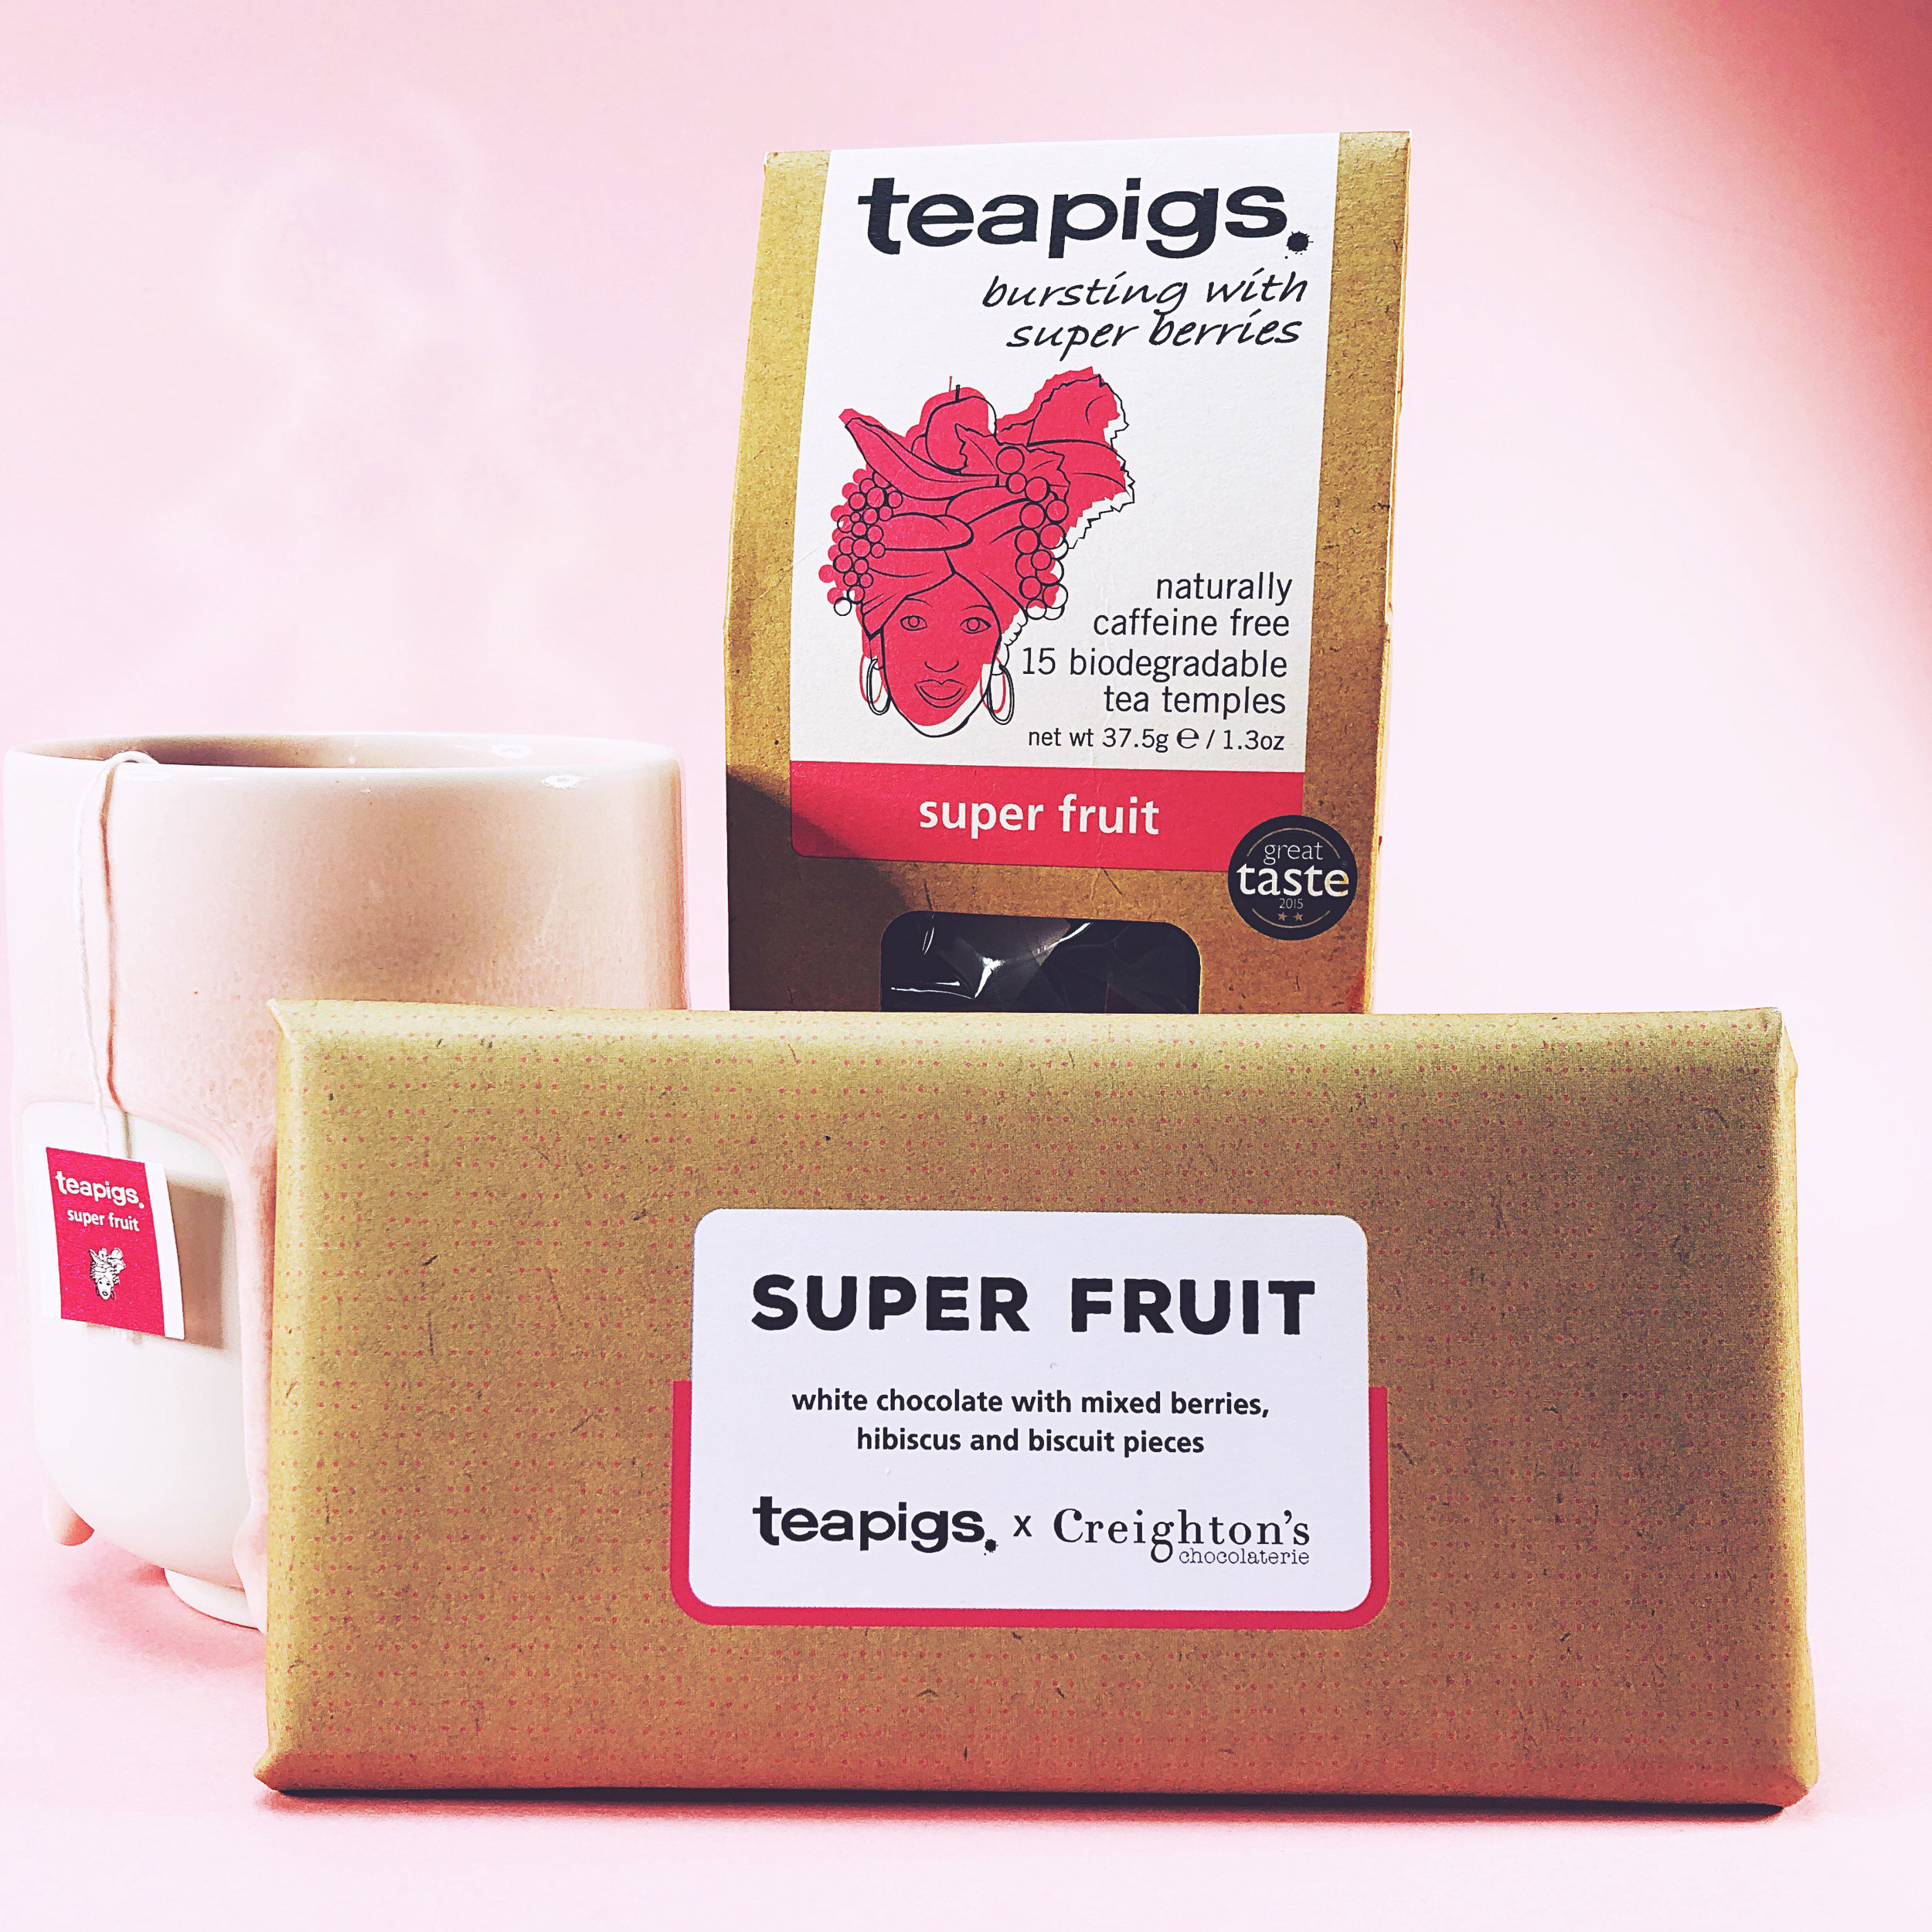 teapigs. x Creighton's Chocolaterie white chocolate bar with mixed berries, hibiscus and biscuit pieces